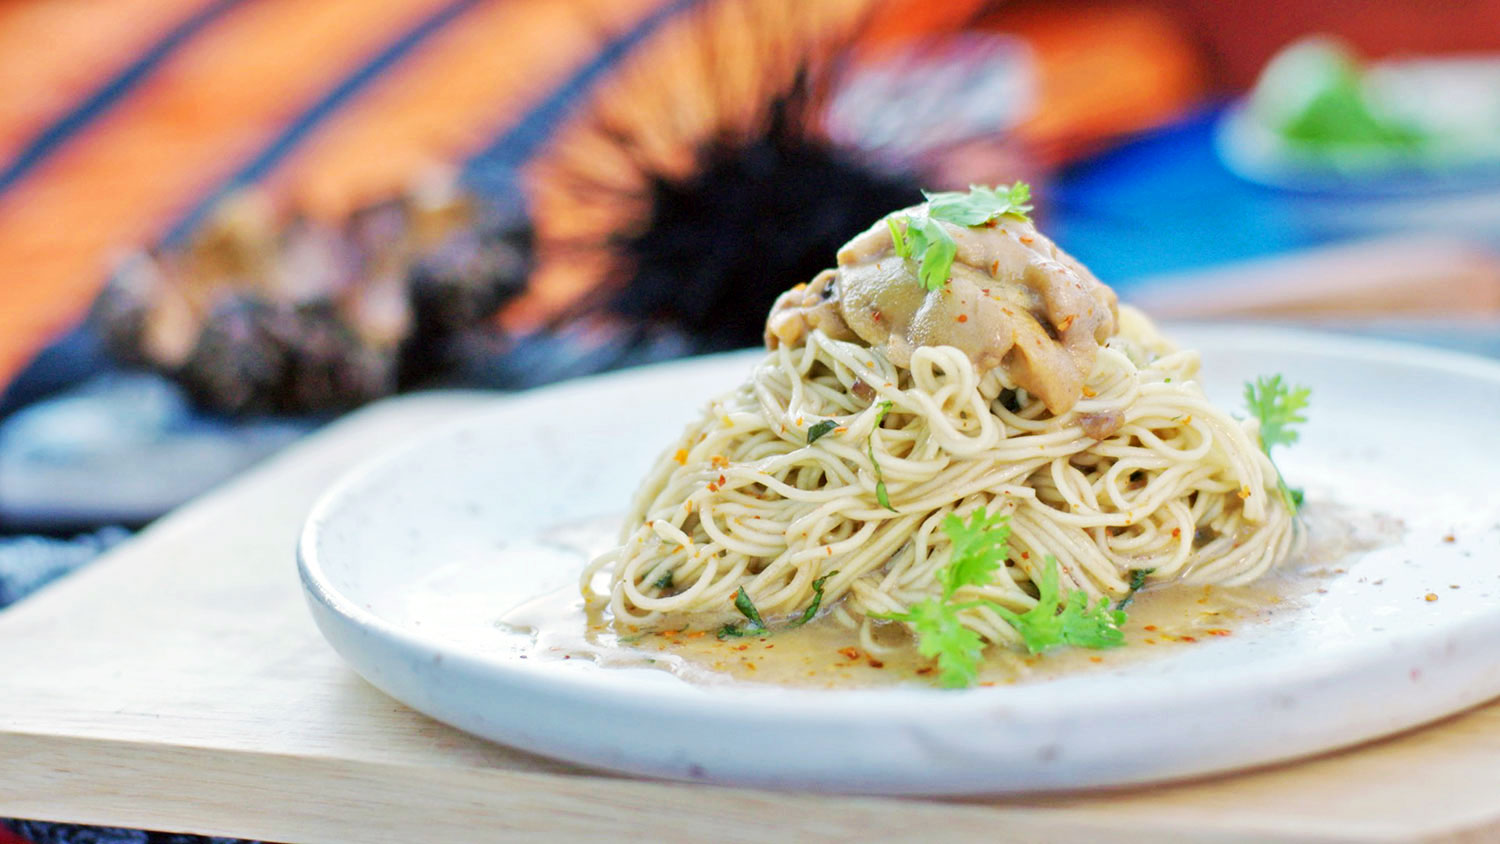 Egg noodles with sea urchin butter and caviar